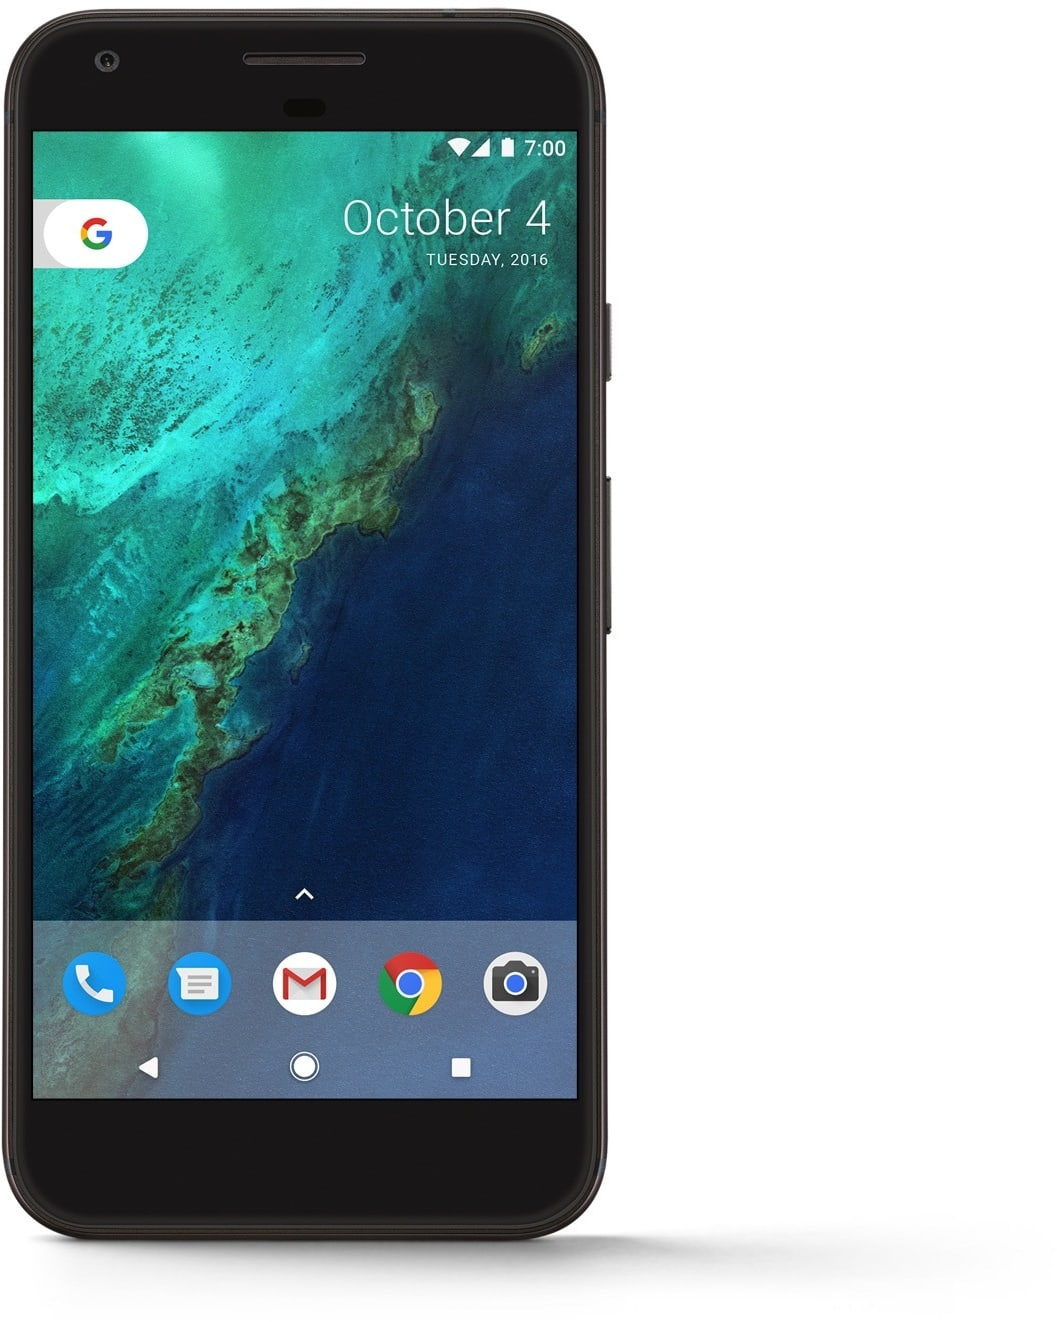 Pixel and Pixel XL review: Google designs its own phones